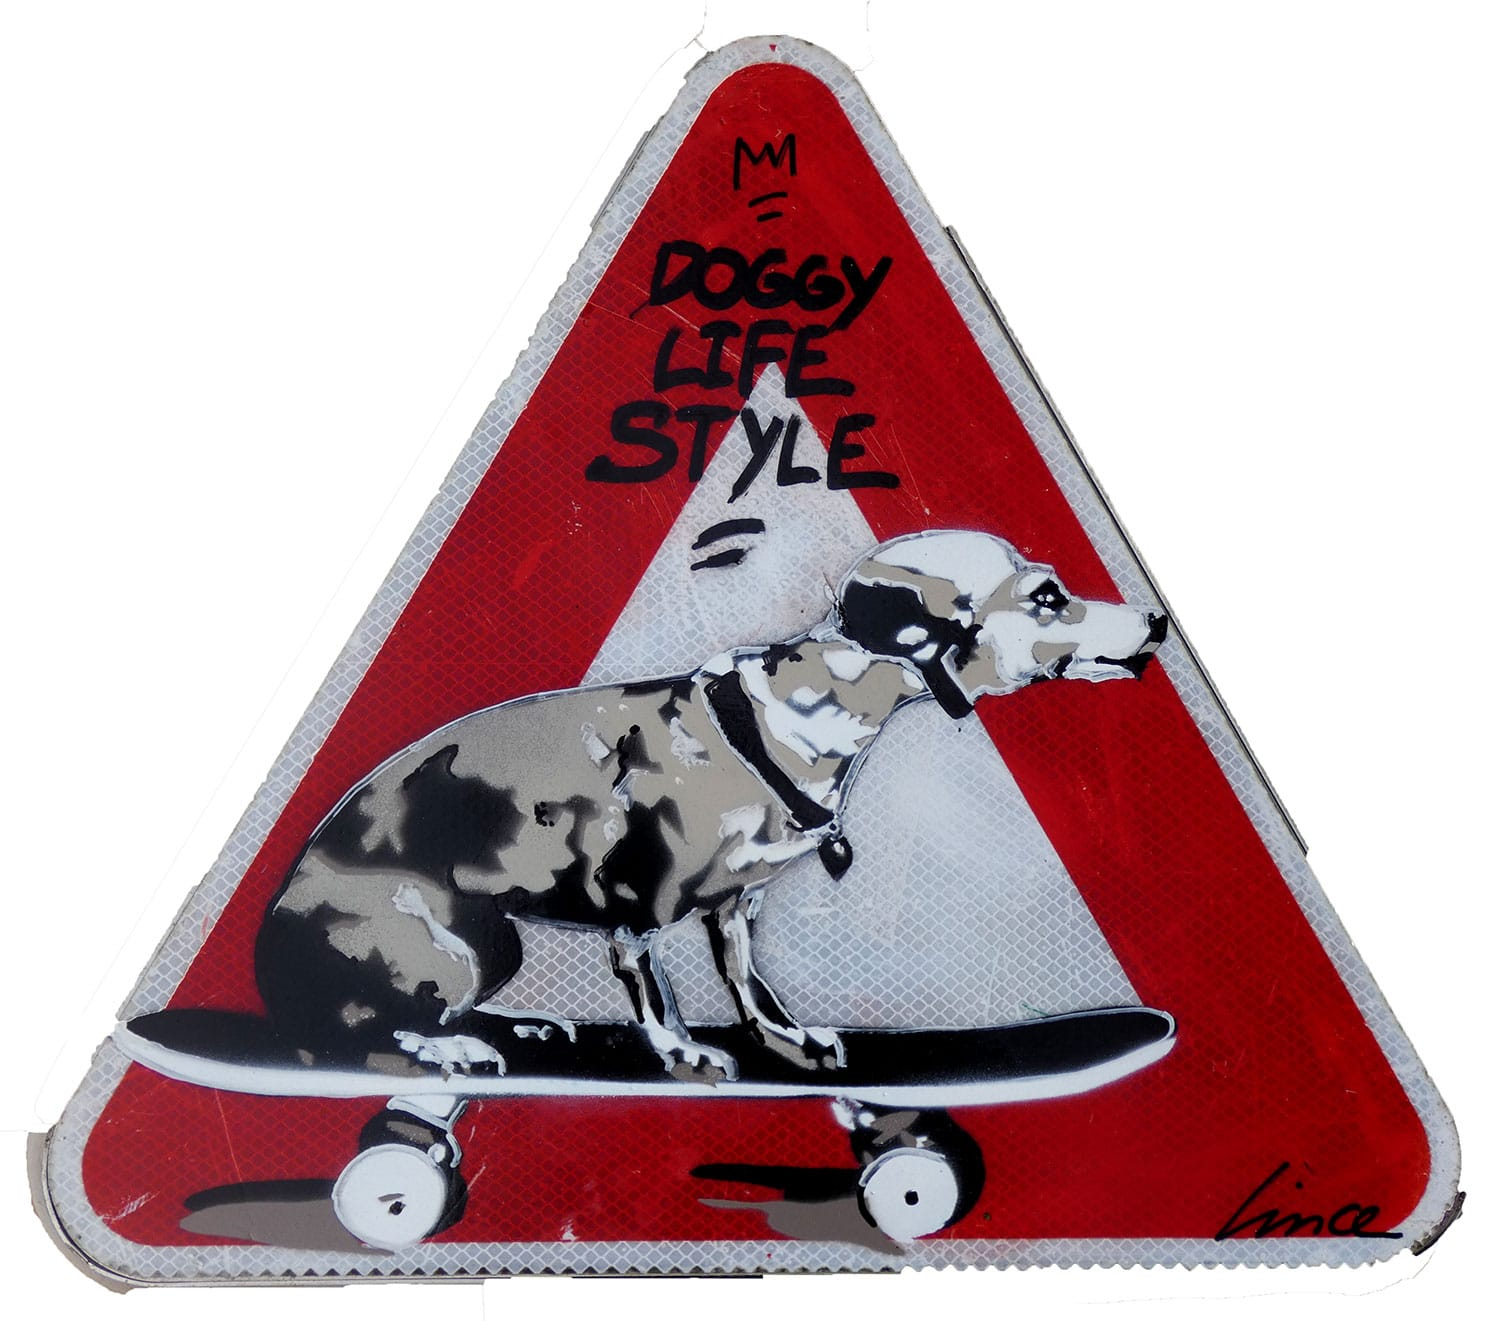 panneau routier triangle doggy